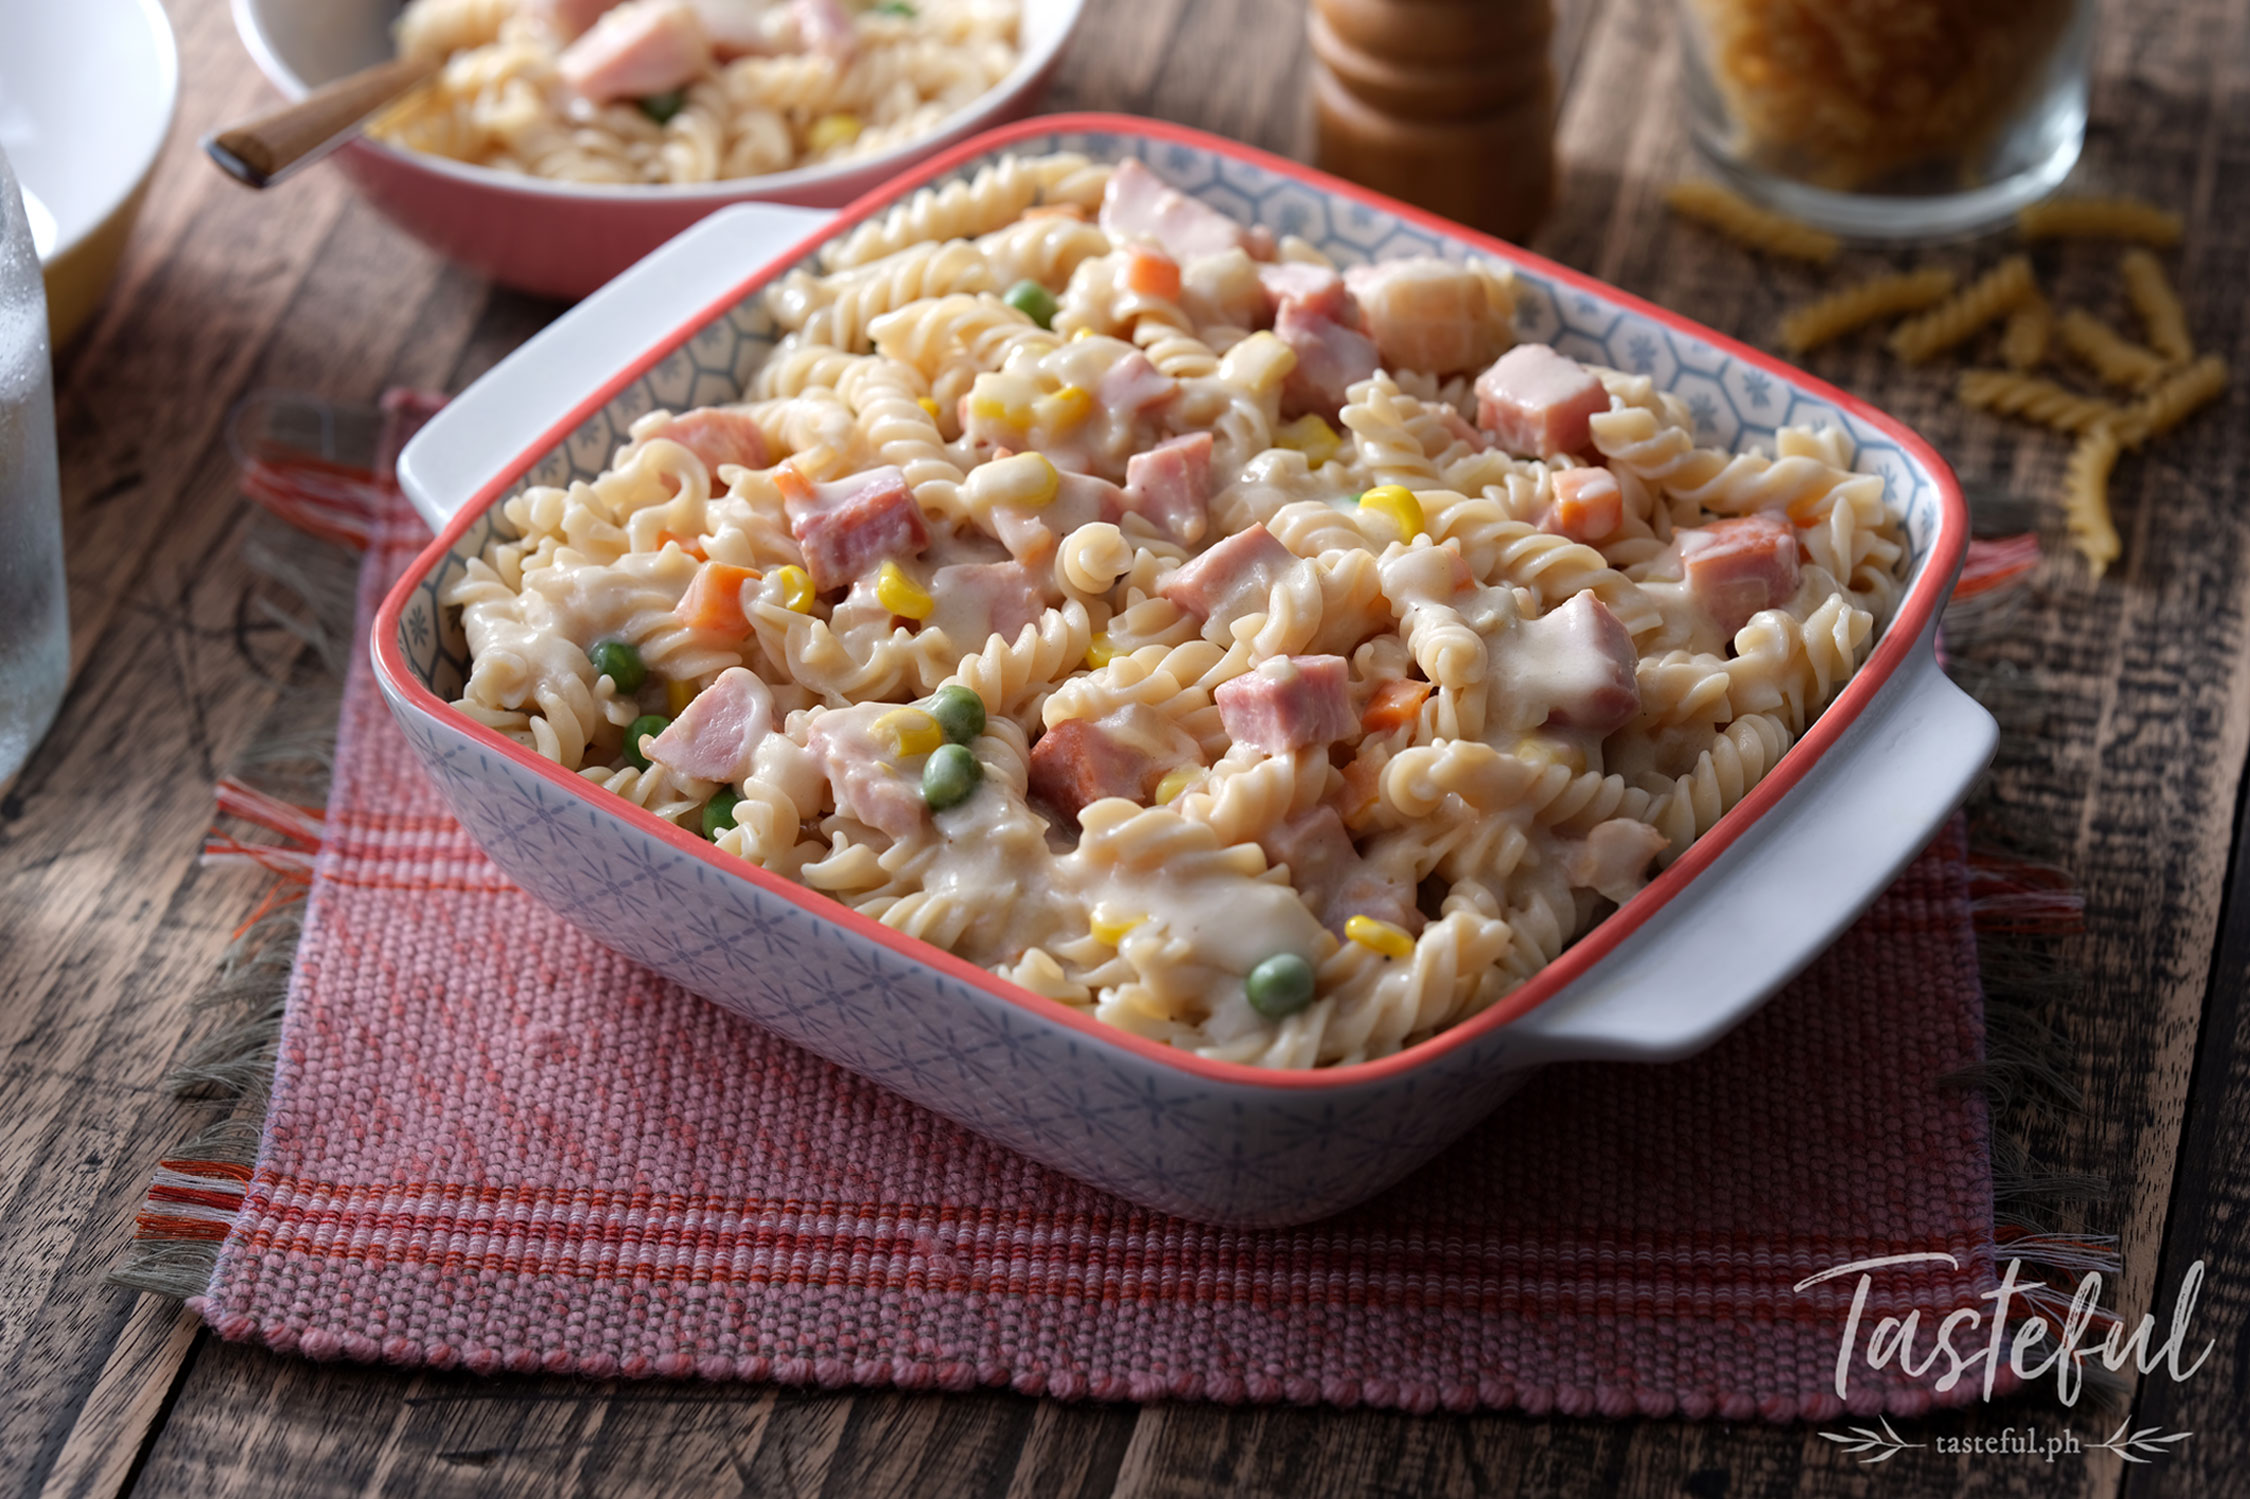 Creamy pasta with vegetables, ham, and cheese